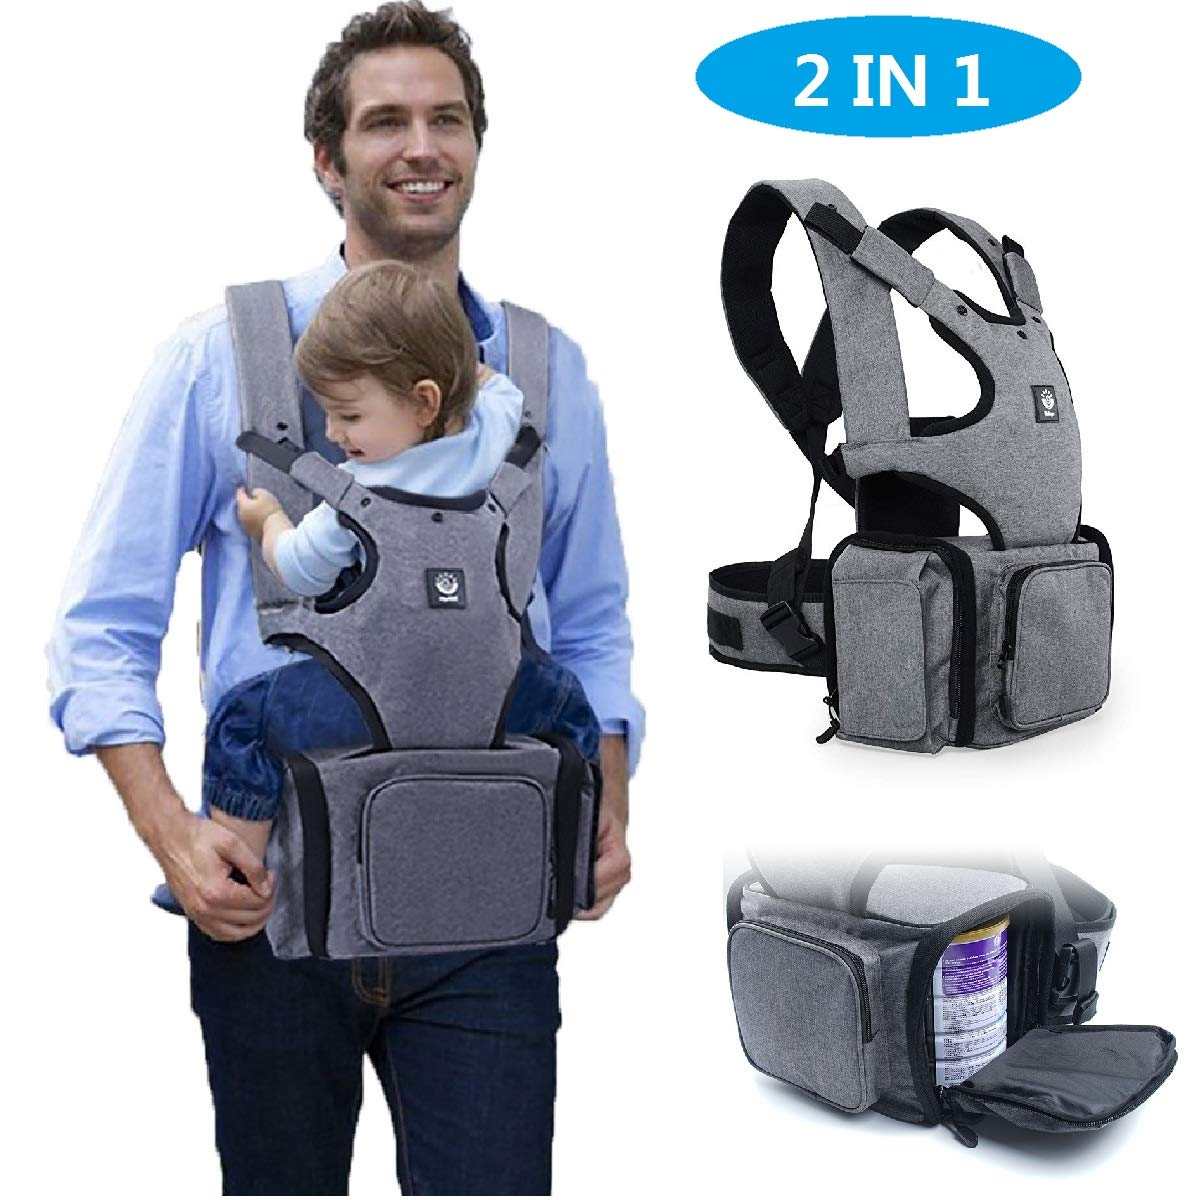 AUCOS Baby Carrier with Hip Seat - 2 in 1 Ergonomic Baby Sling Carrier and Dipers Bag Backpack Carrier